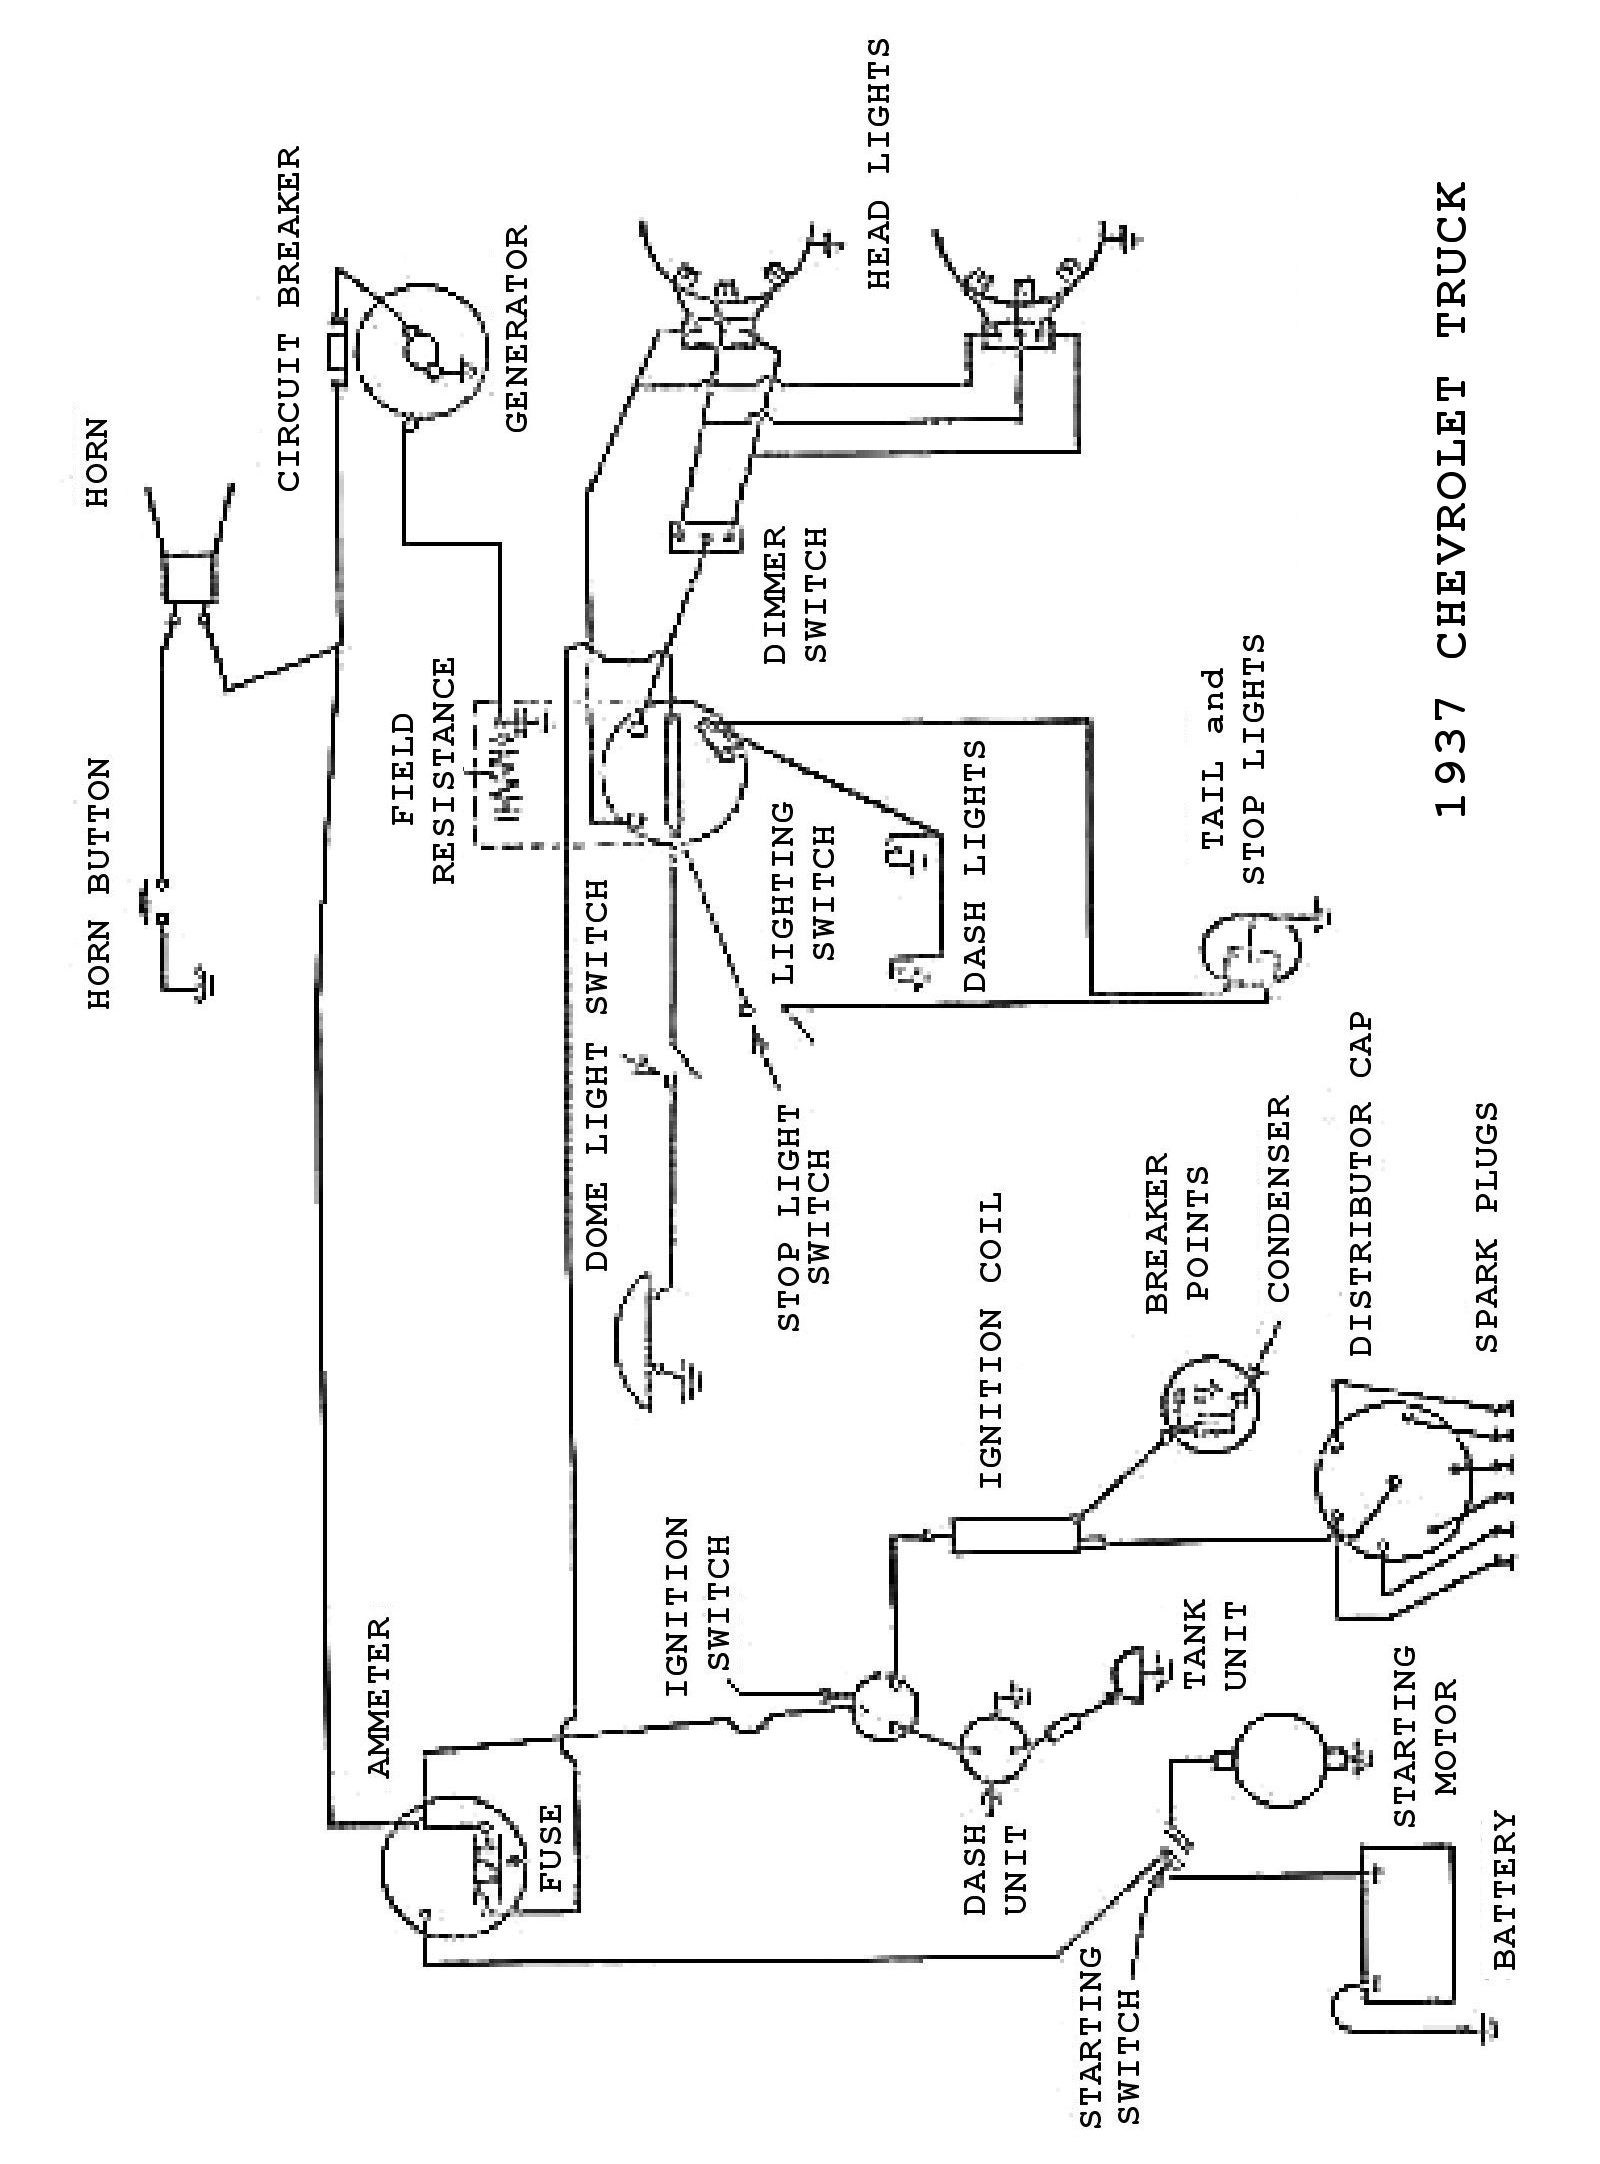 66 chevy headlight switch wiring diagram 1952 chevy headlight switch wiring diagram 1952 chevy headlight switch wiring - wiring diagram